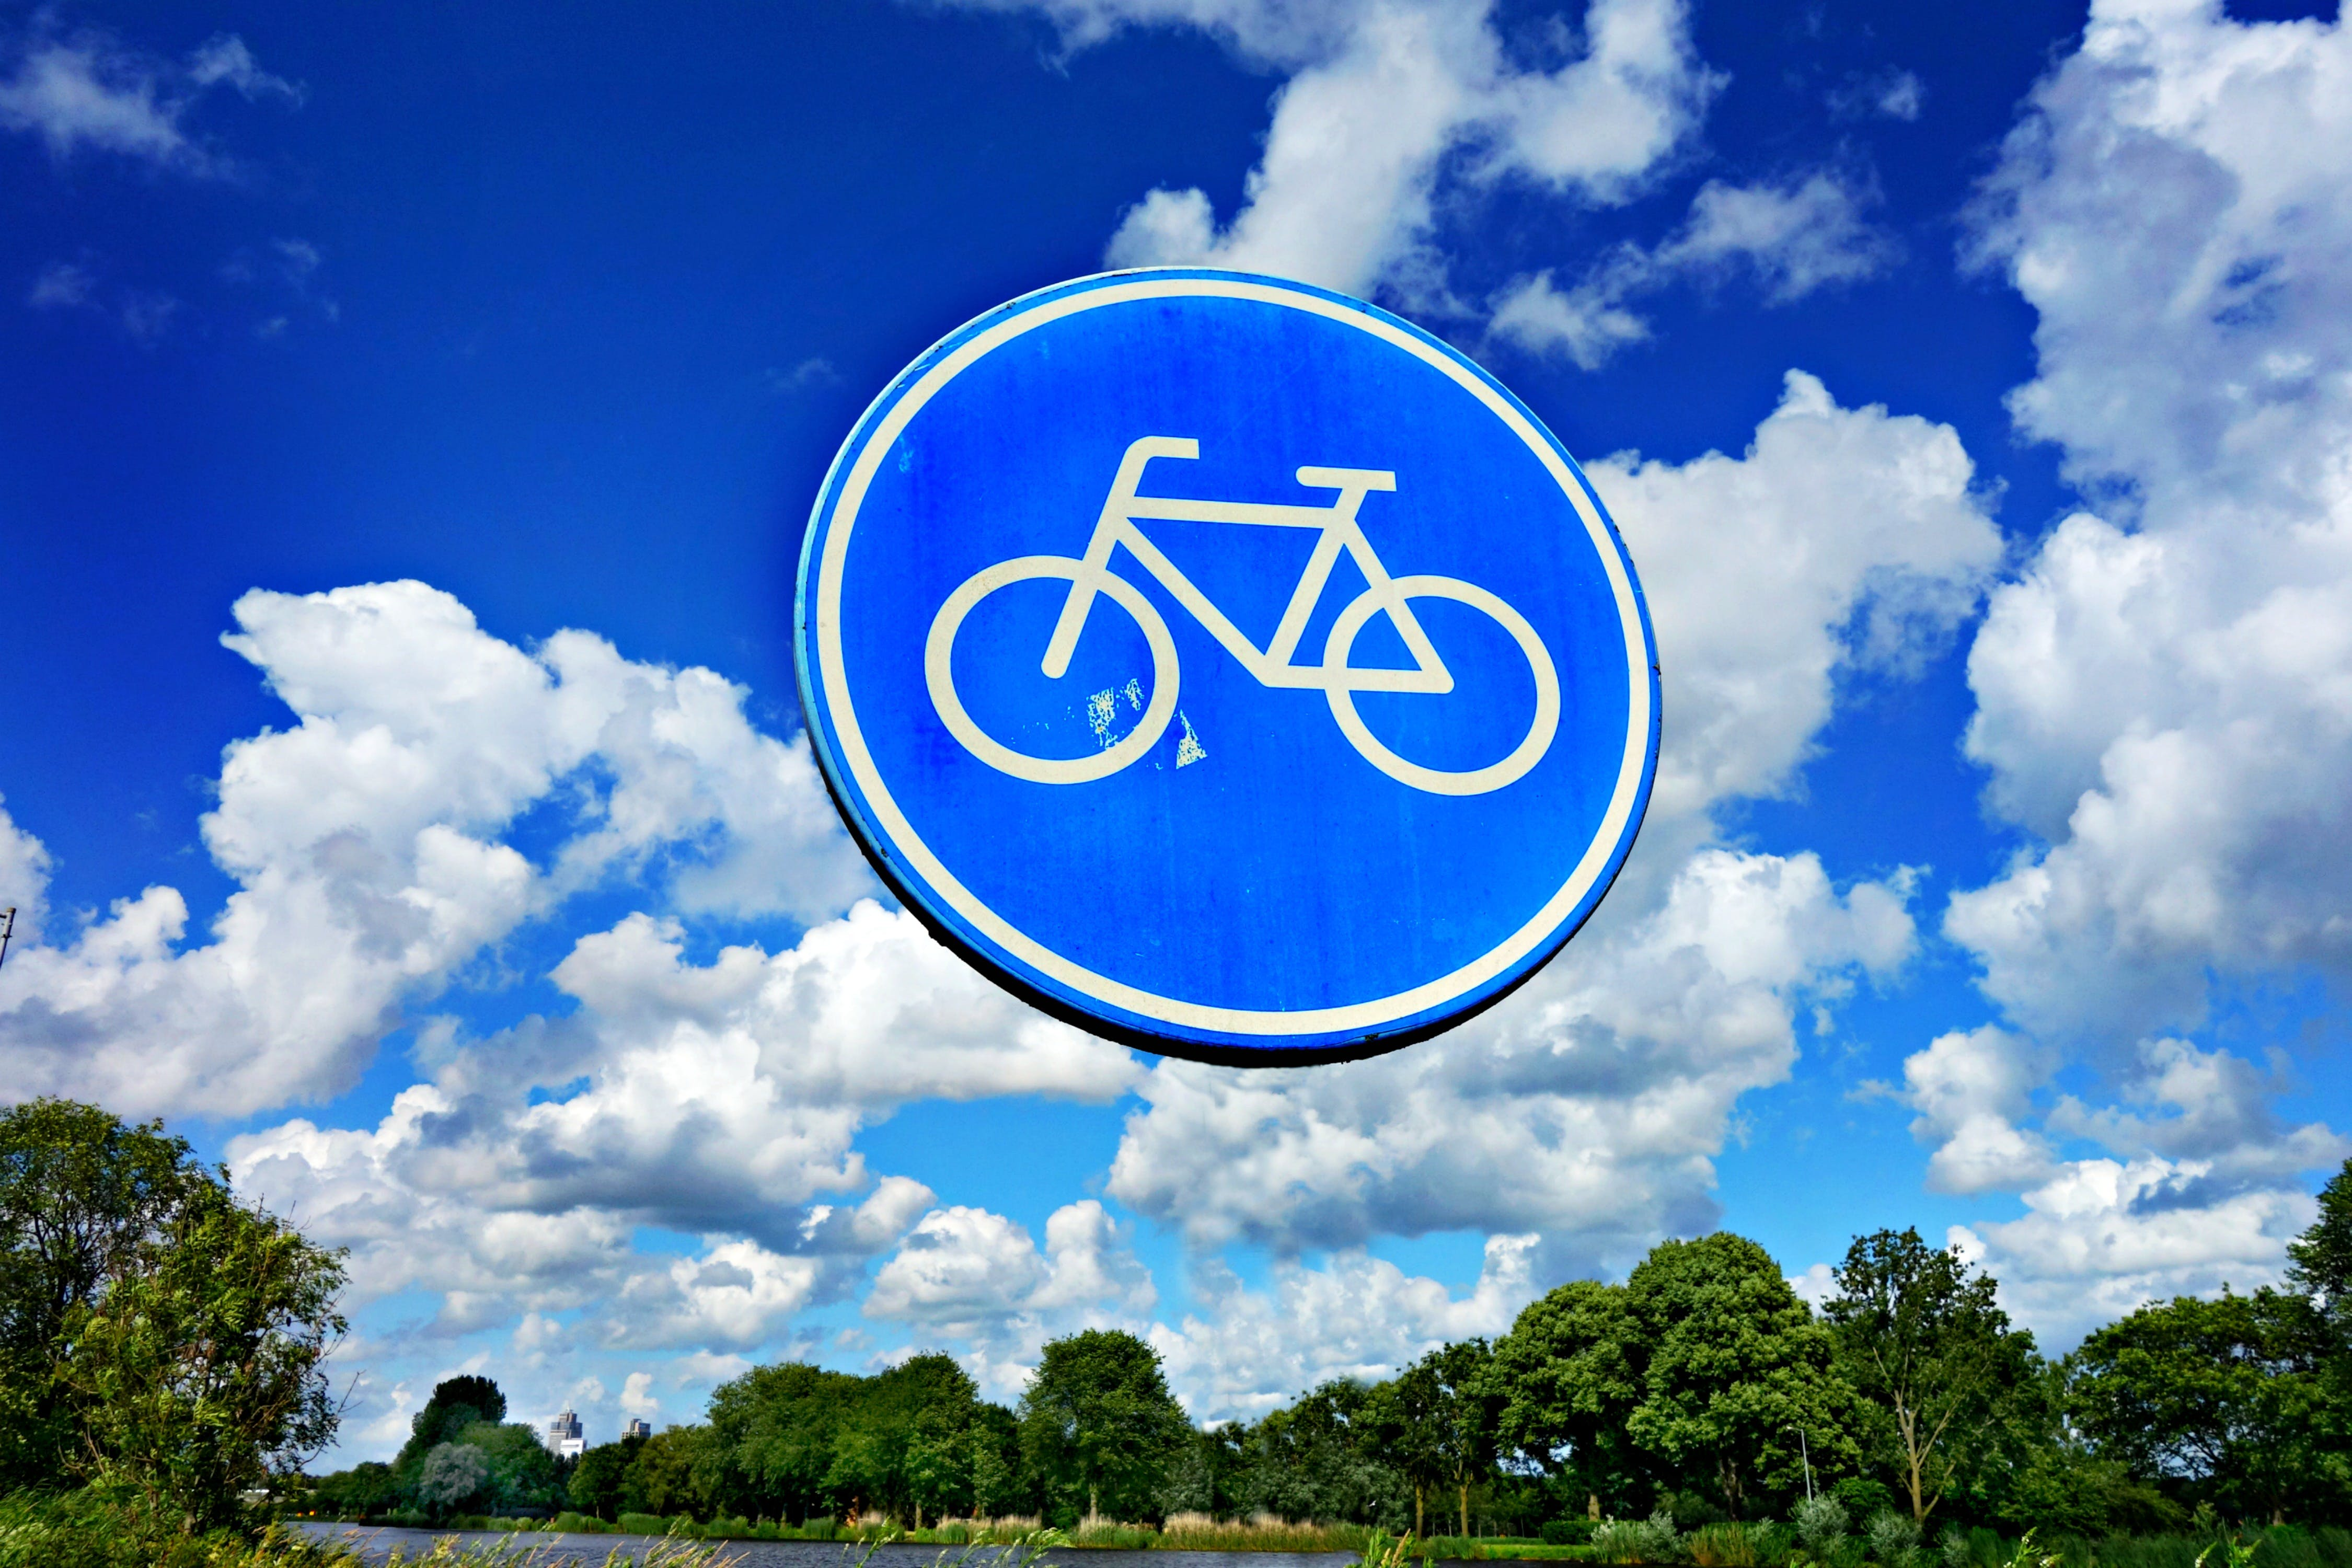 Free stock photo of sign, direction, bicycle, symbol